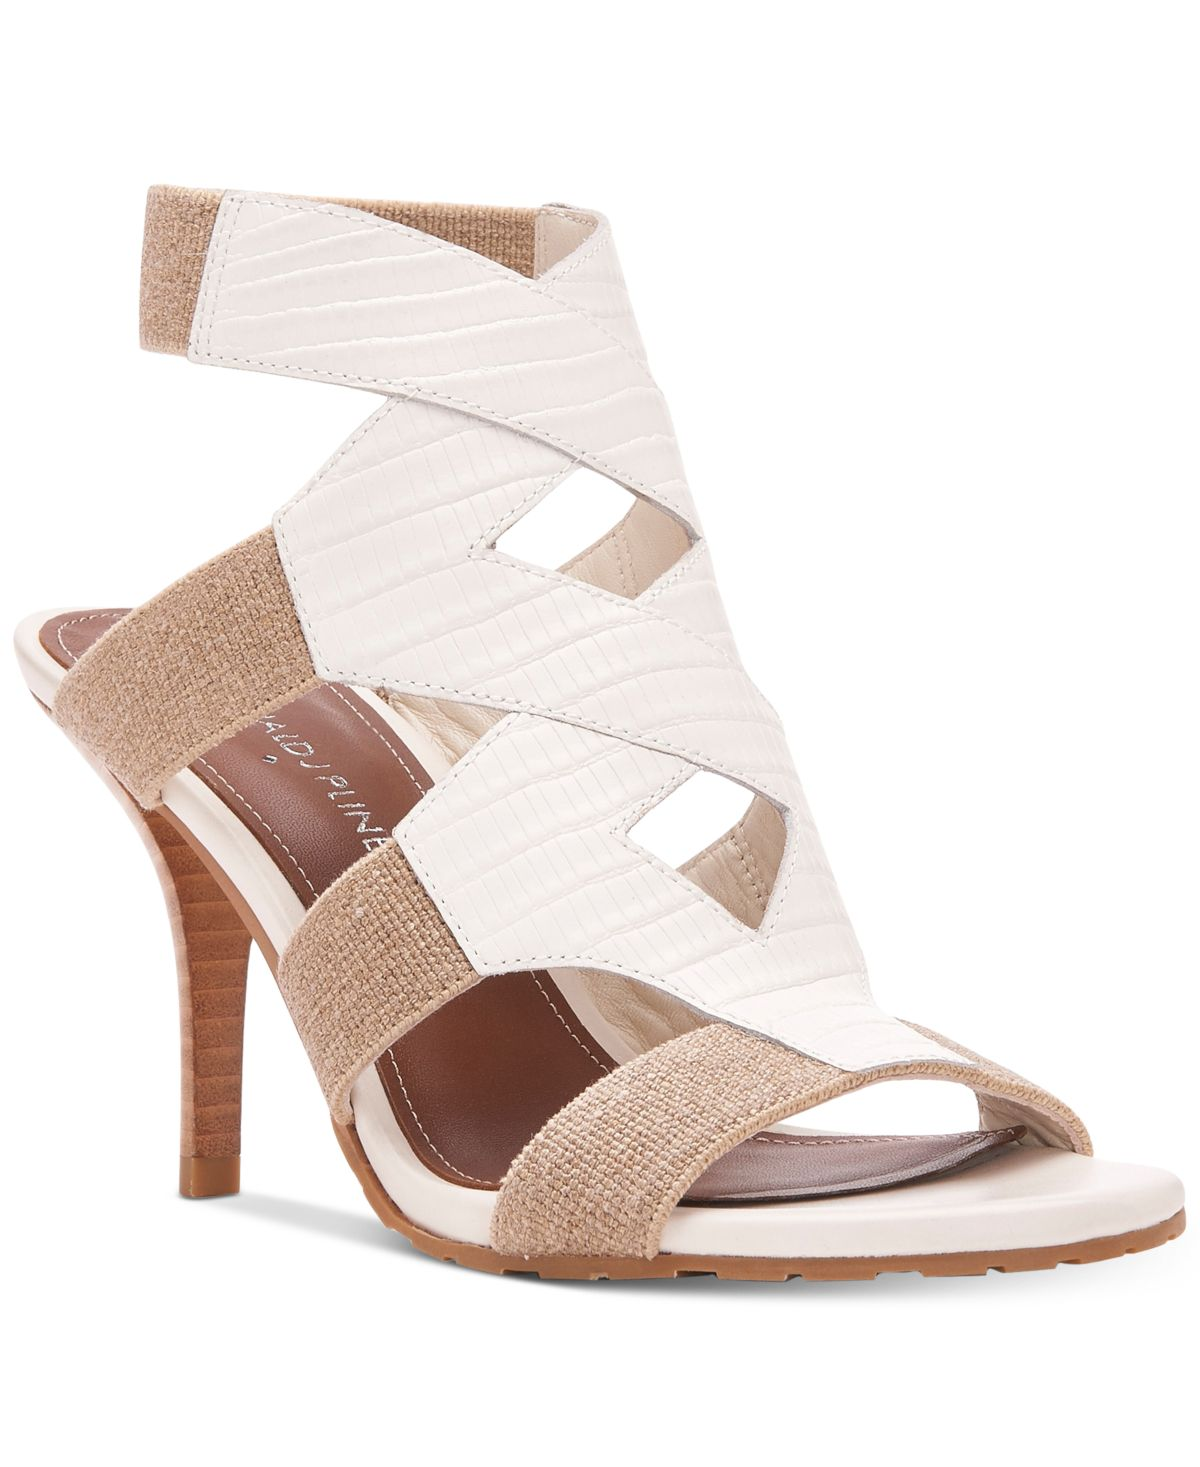 Donald J Pliner Gwen Strappy Sandals by Donald J Pliner